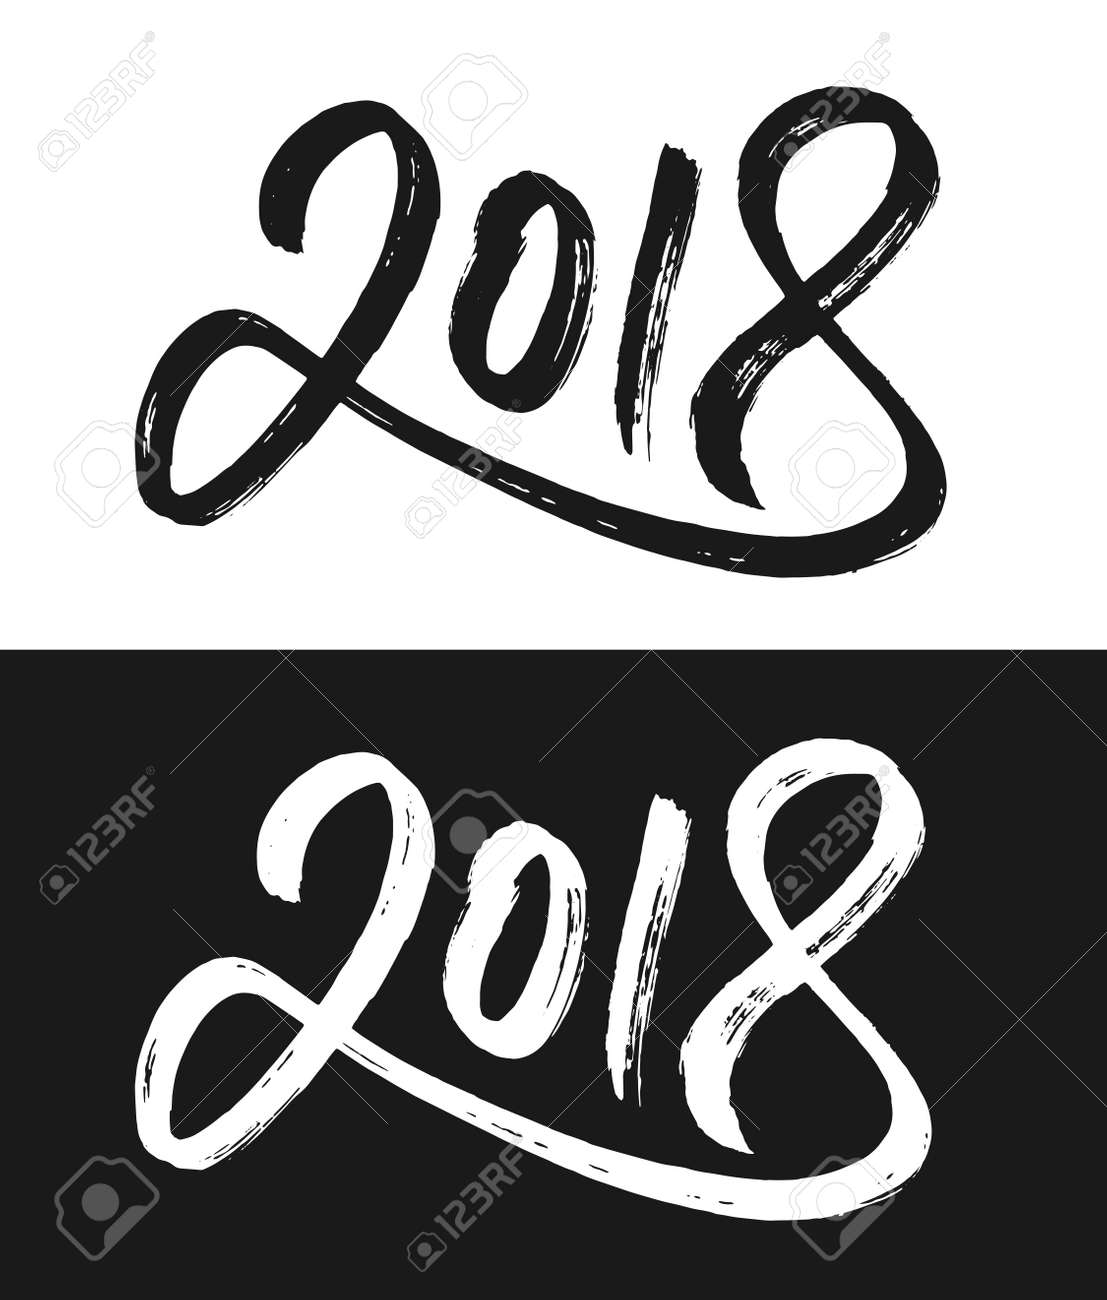 Happy New Year 2018 Greeting Card Template. Hand Drawn Calligraphic ...